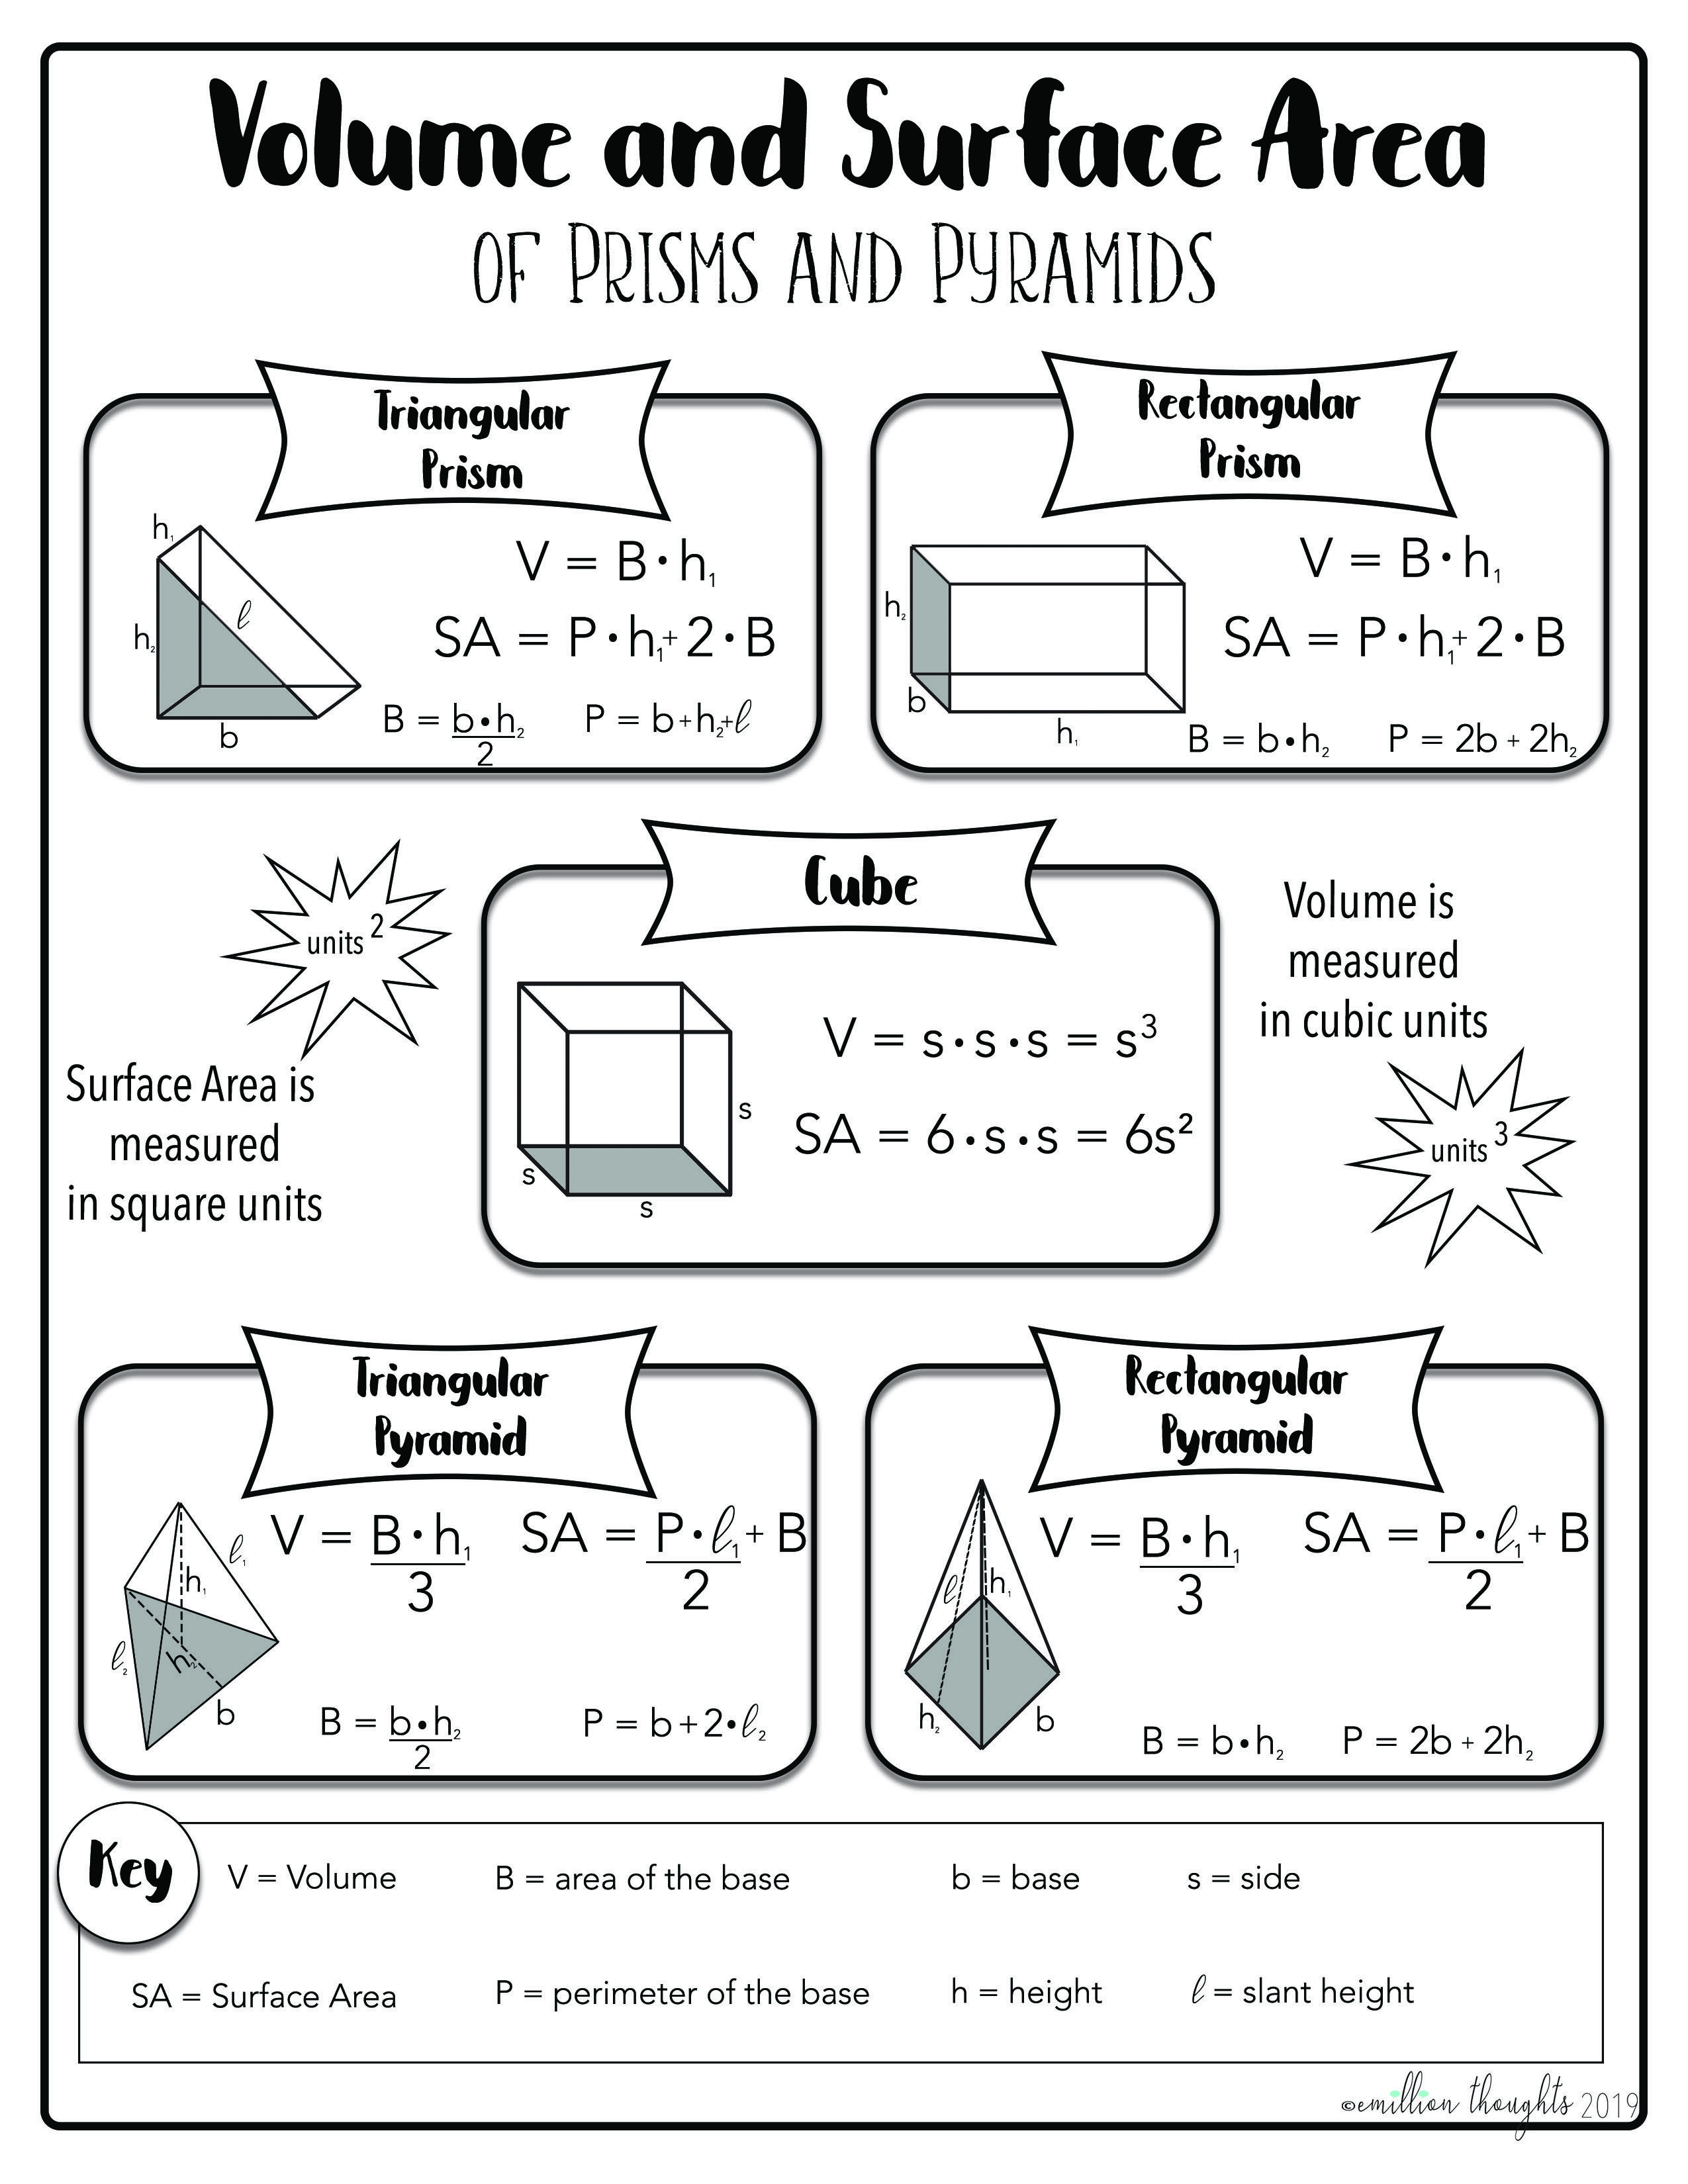 Surface Area And Volume Of Prisms And Pyramids Formula Sheet With